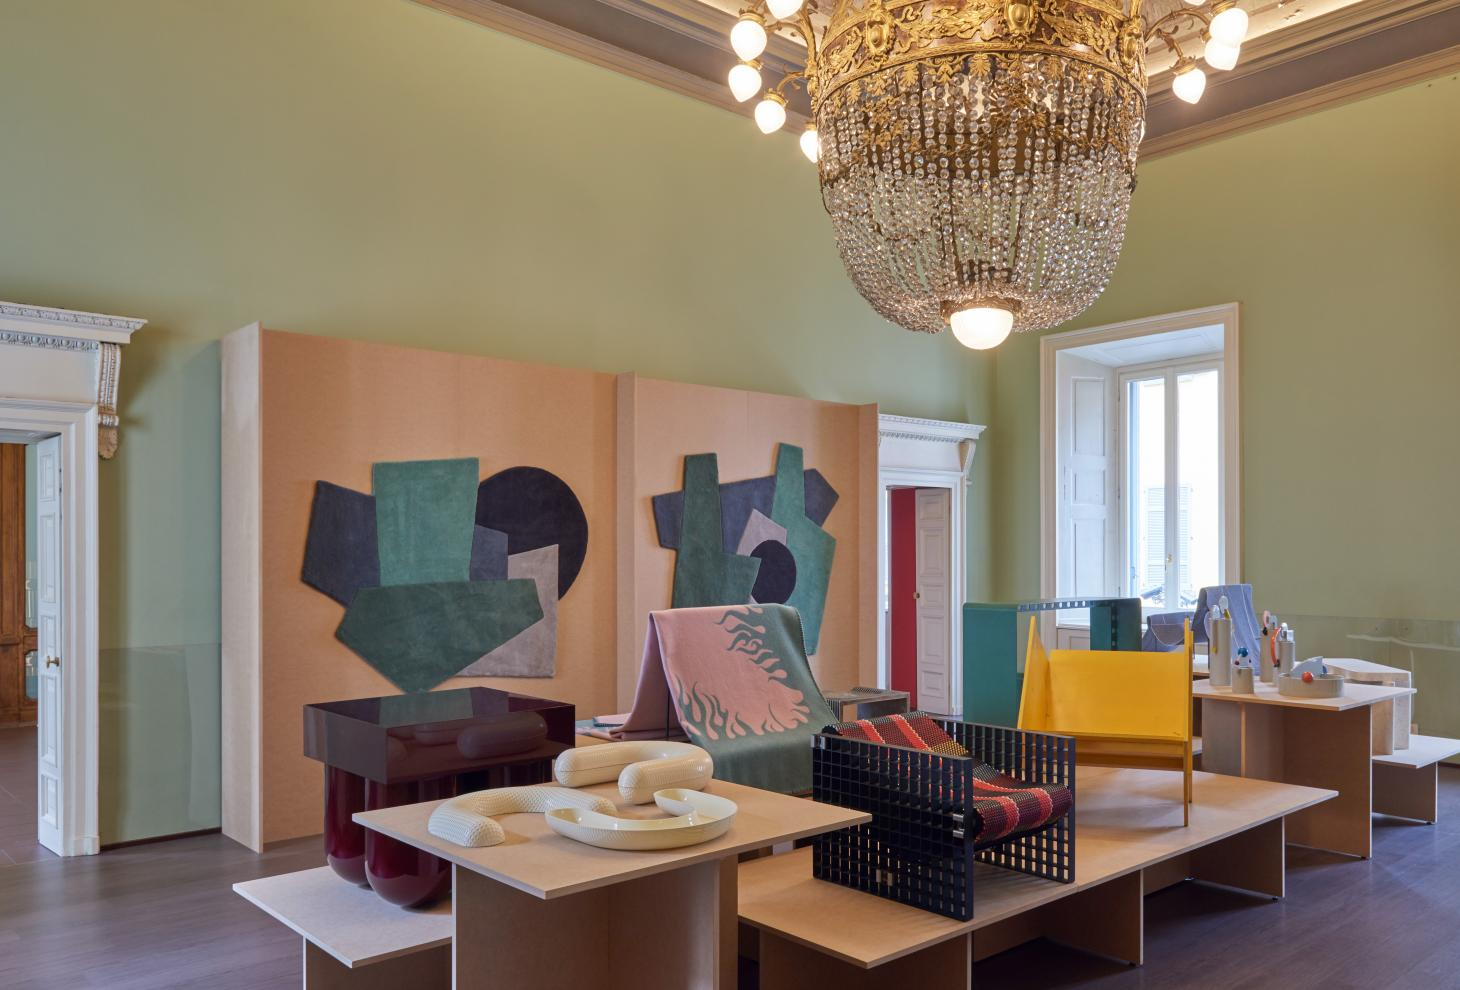 Furniture and objects on display in historical property during Como Design Festival